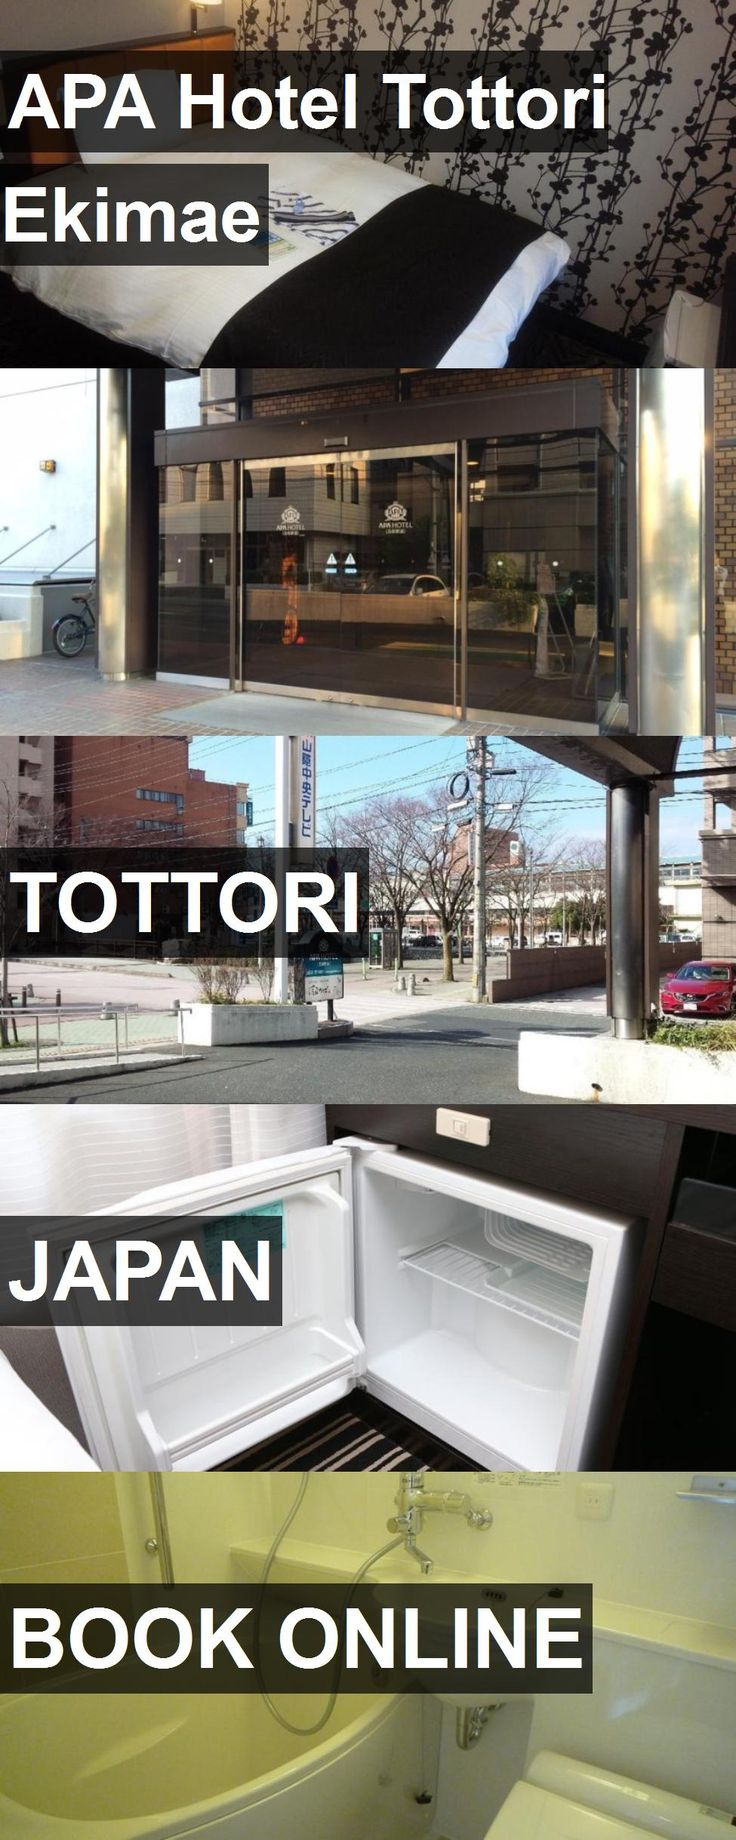 APA Hotel Tottori Ekimae in Tottori, Japan. For more information, photos, reviews and best prices please follow the link. #Japan #Tottori #travel #vacation #hotel